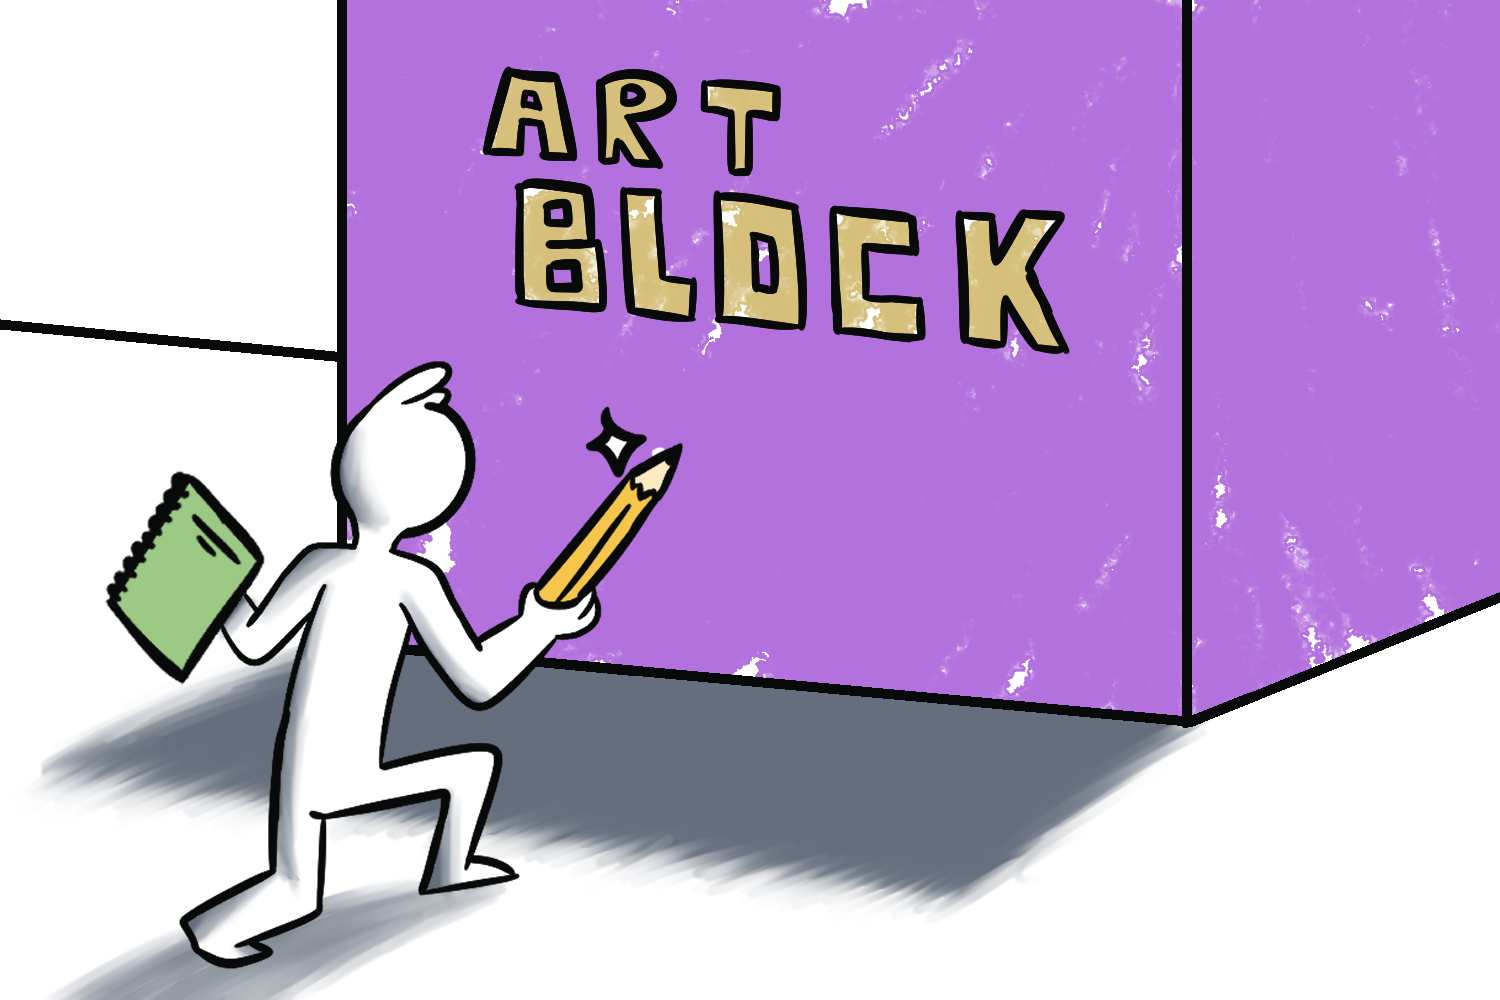 Sharpen the pencil and sharpen the mind. Escaping art block can seem like an intense battle.